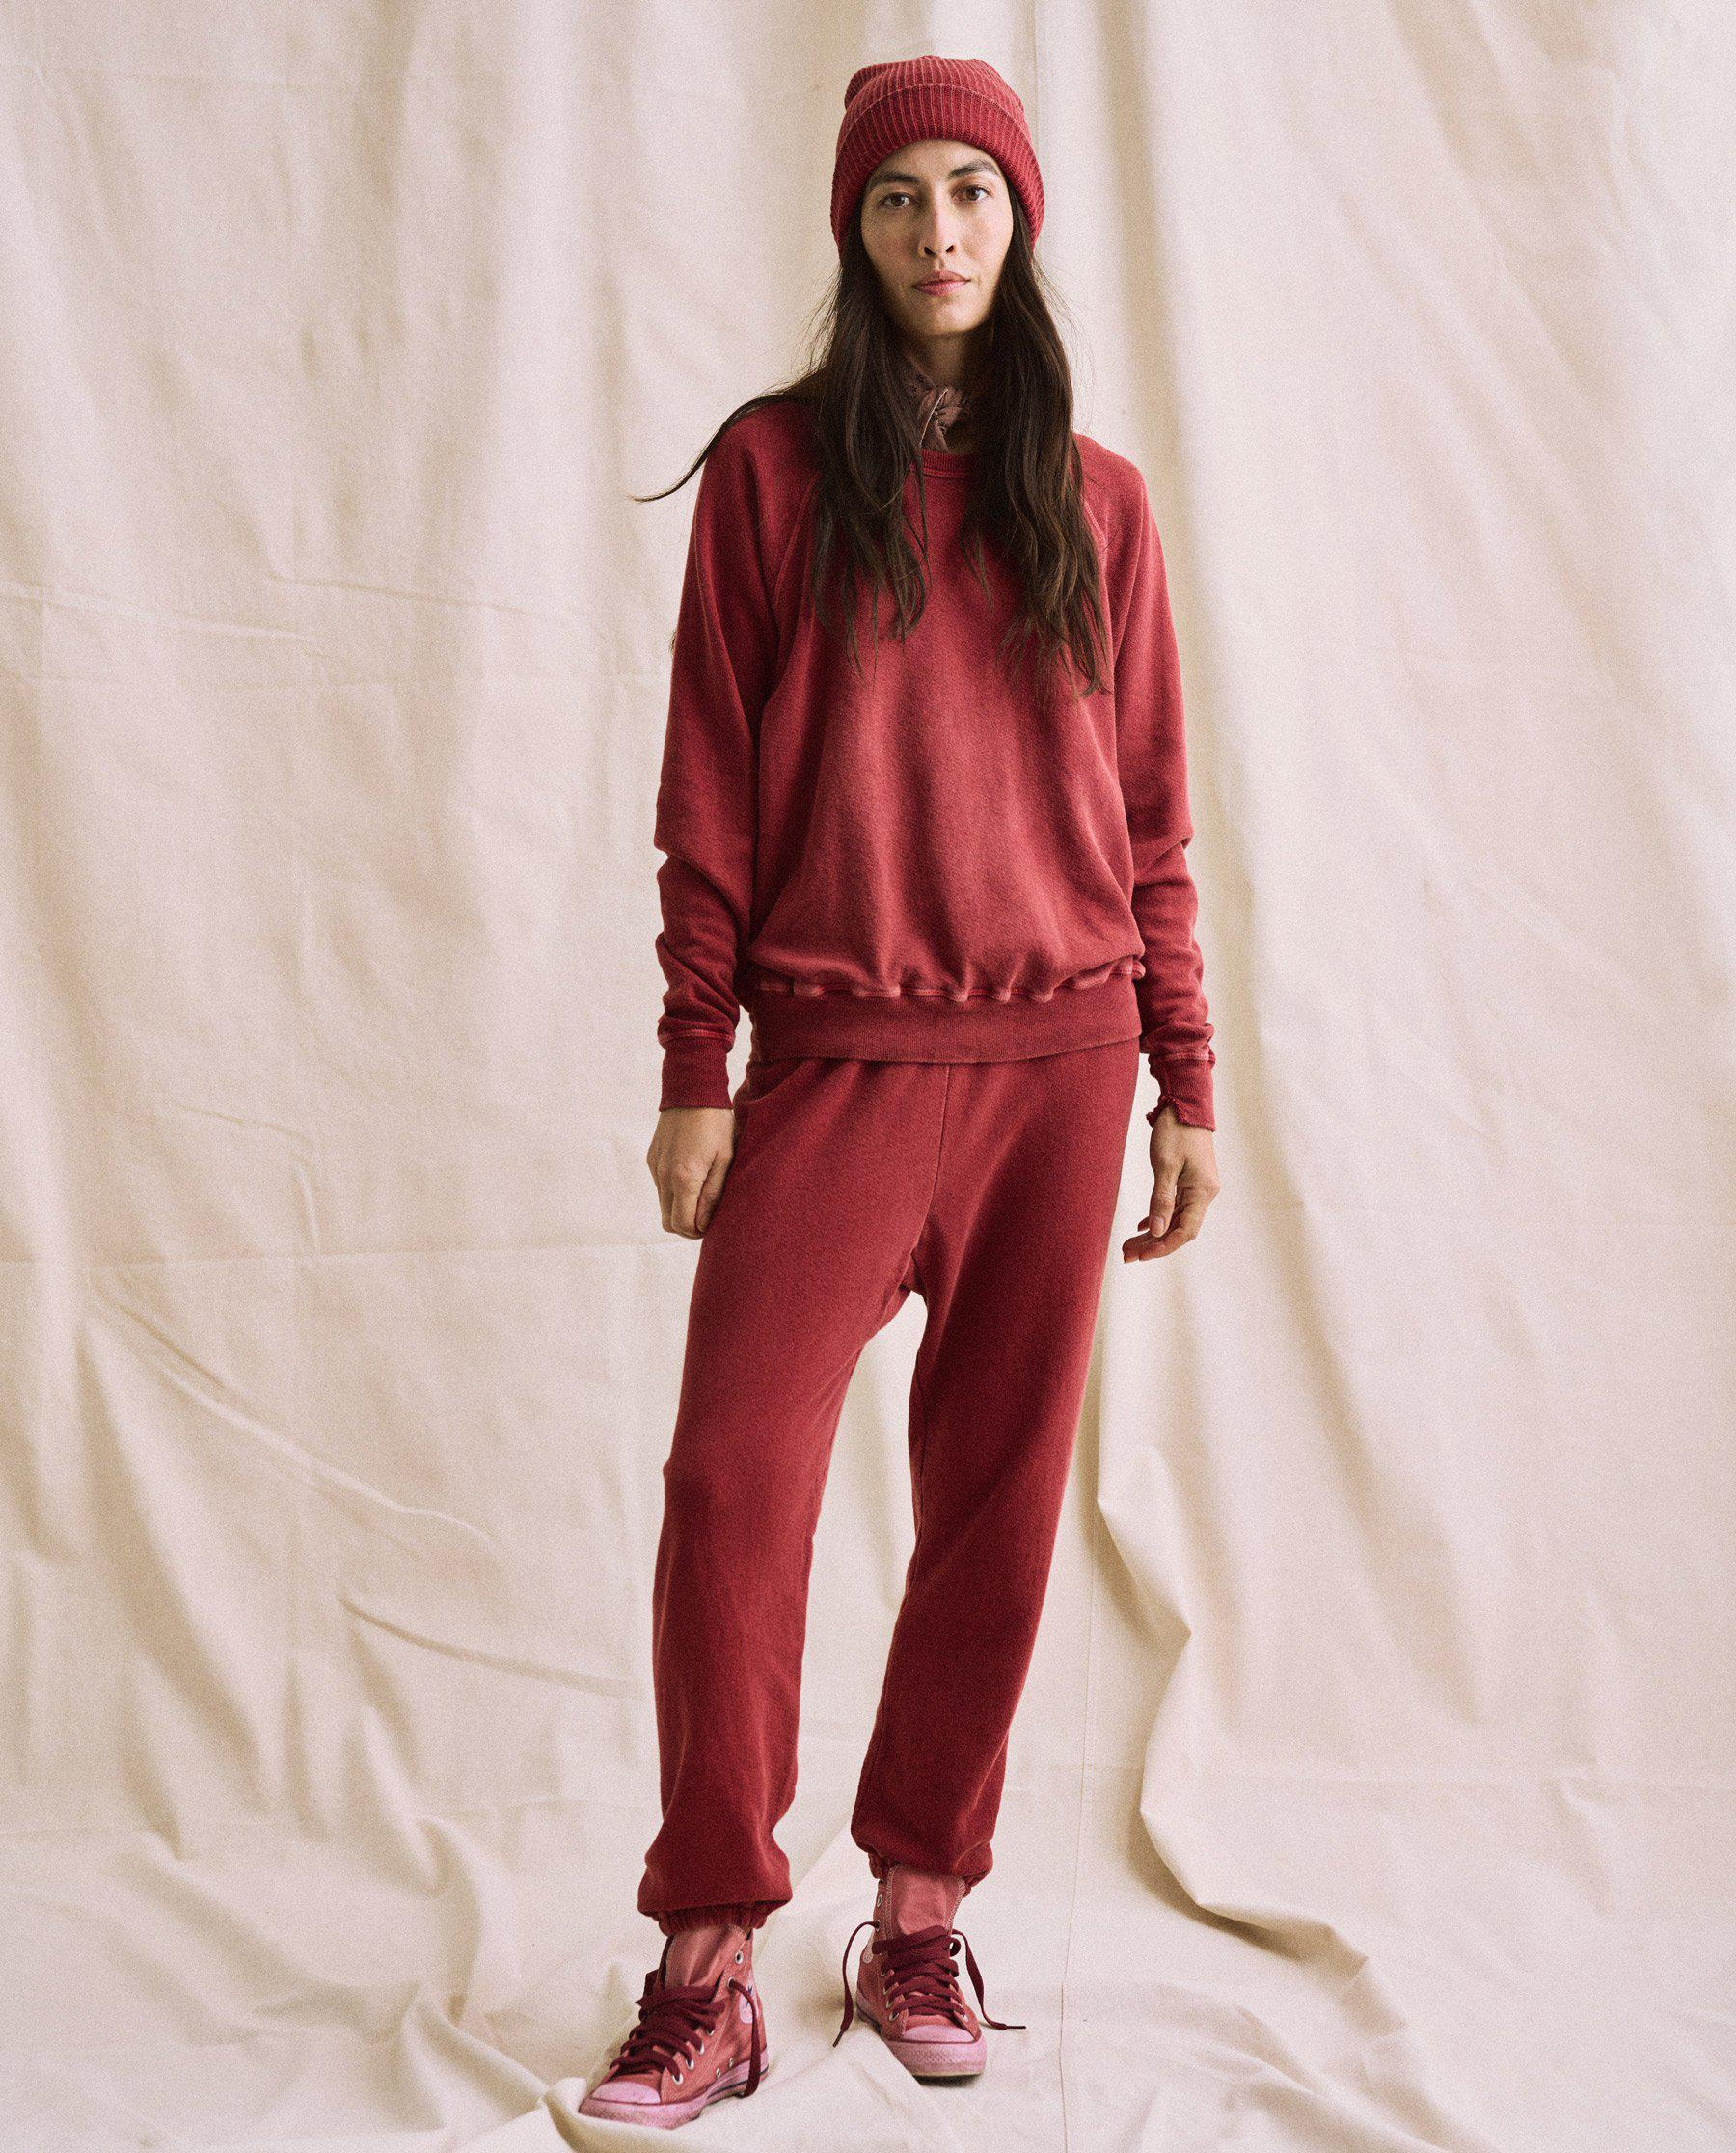 The Plant-Dyed College Sweatshirt. Novelty -- Deep Madder Root